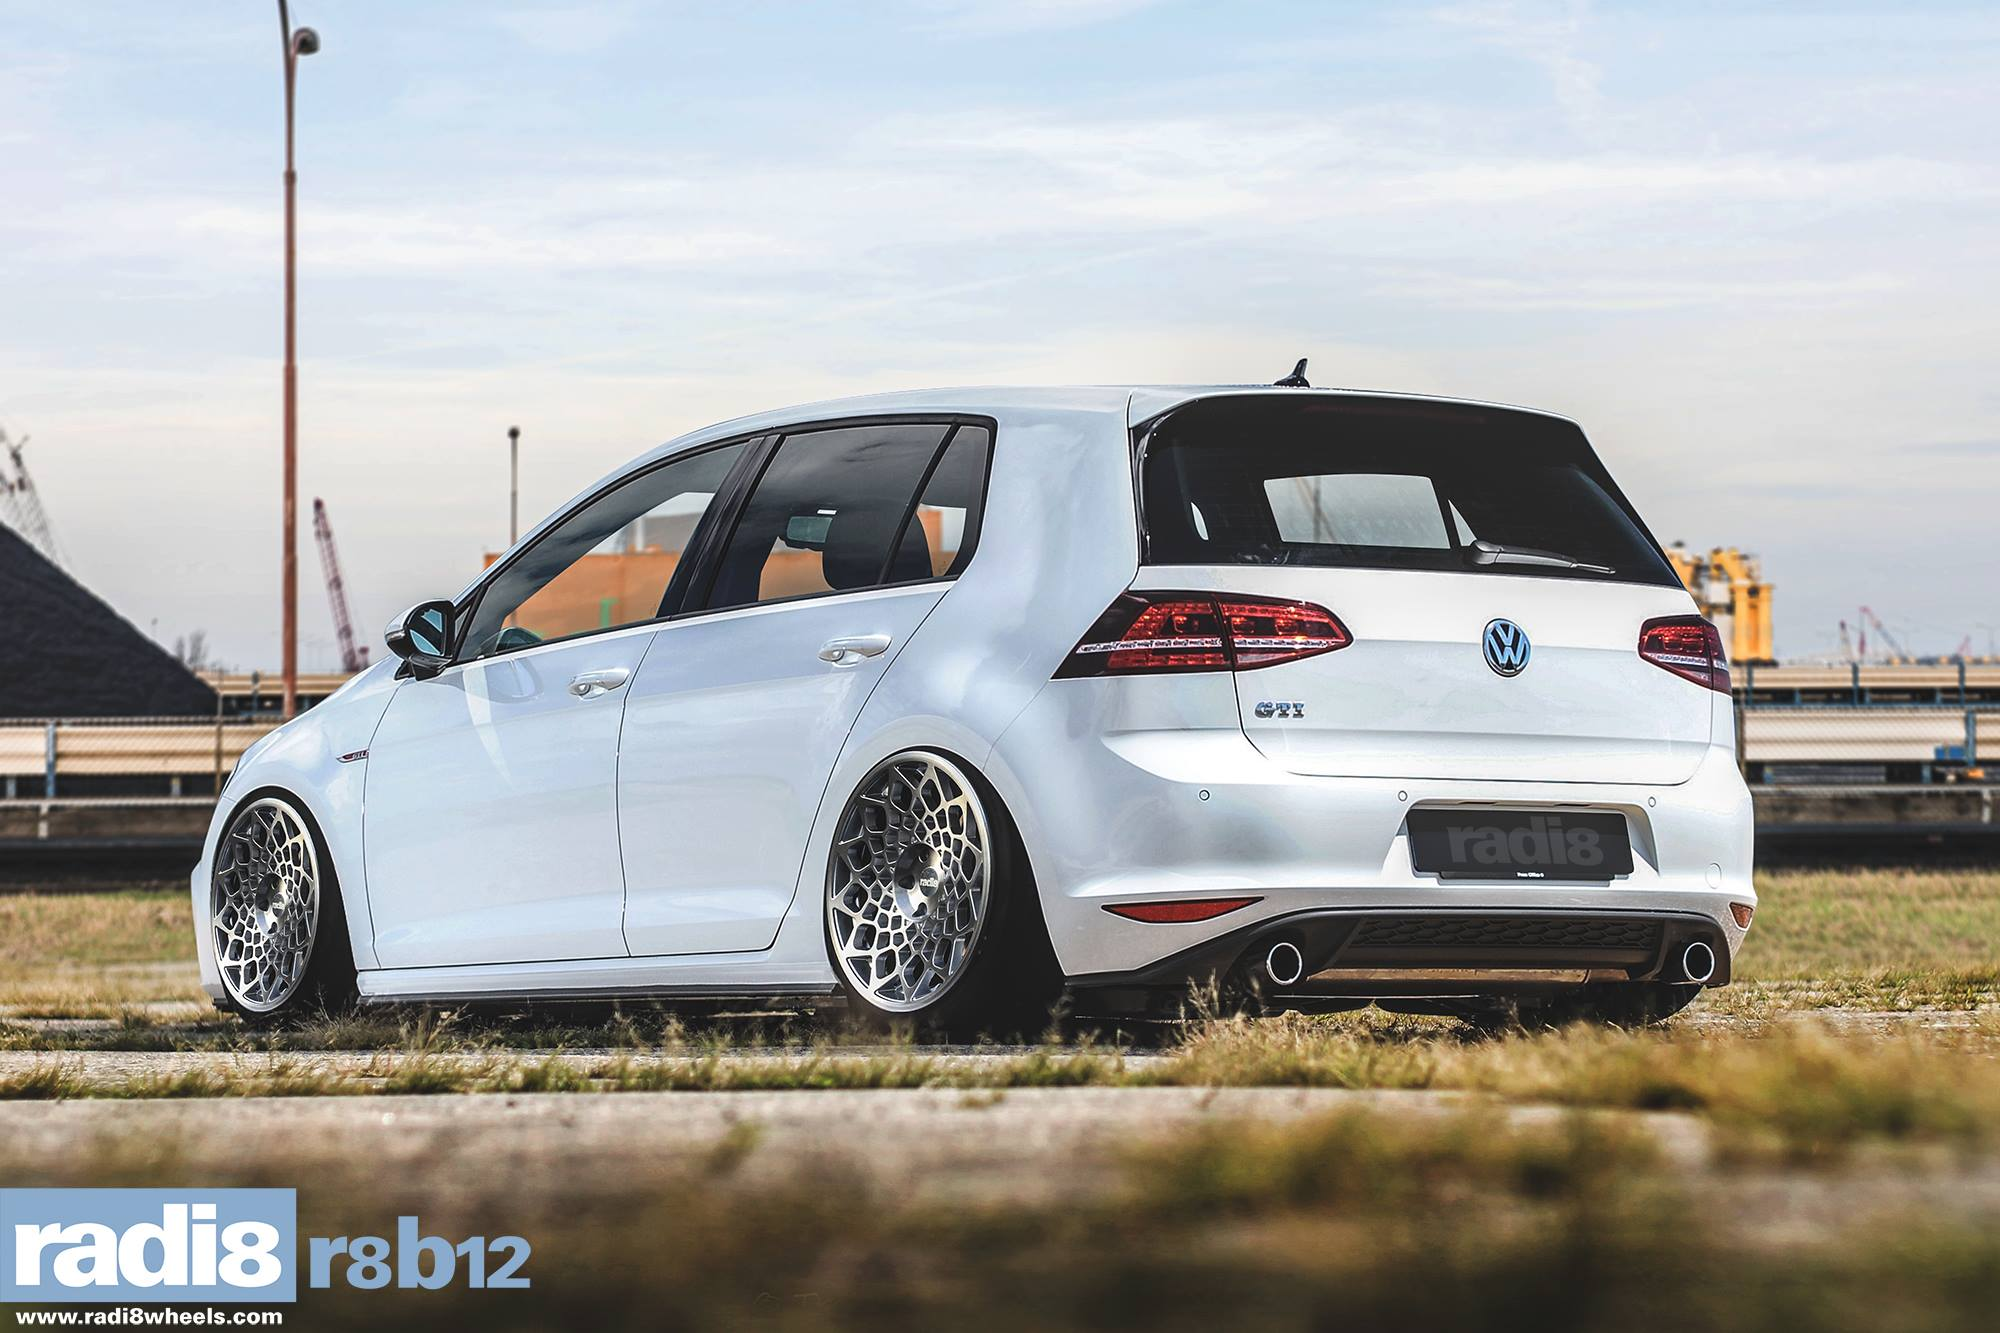 Radi8 R8B12 Wheels + Volkswagen Golf GTI